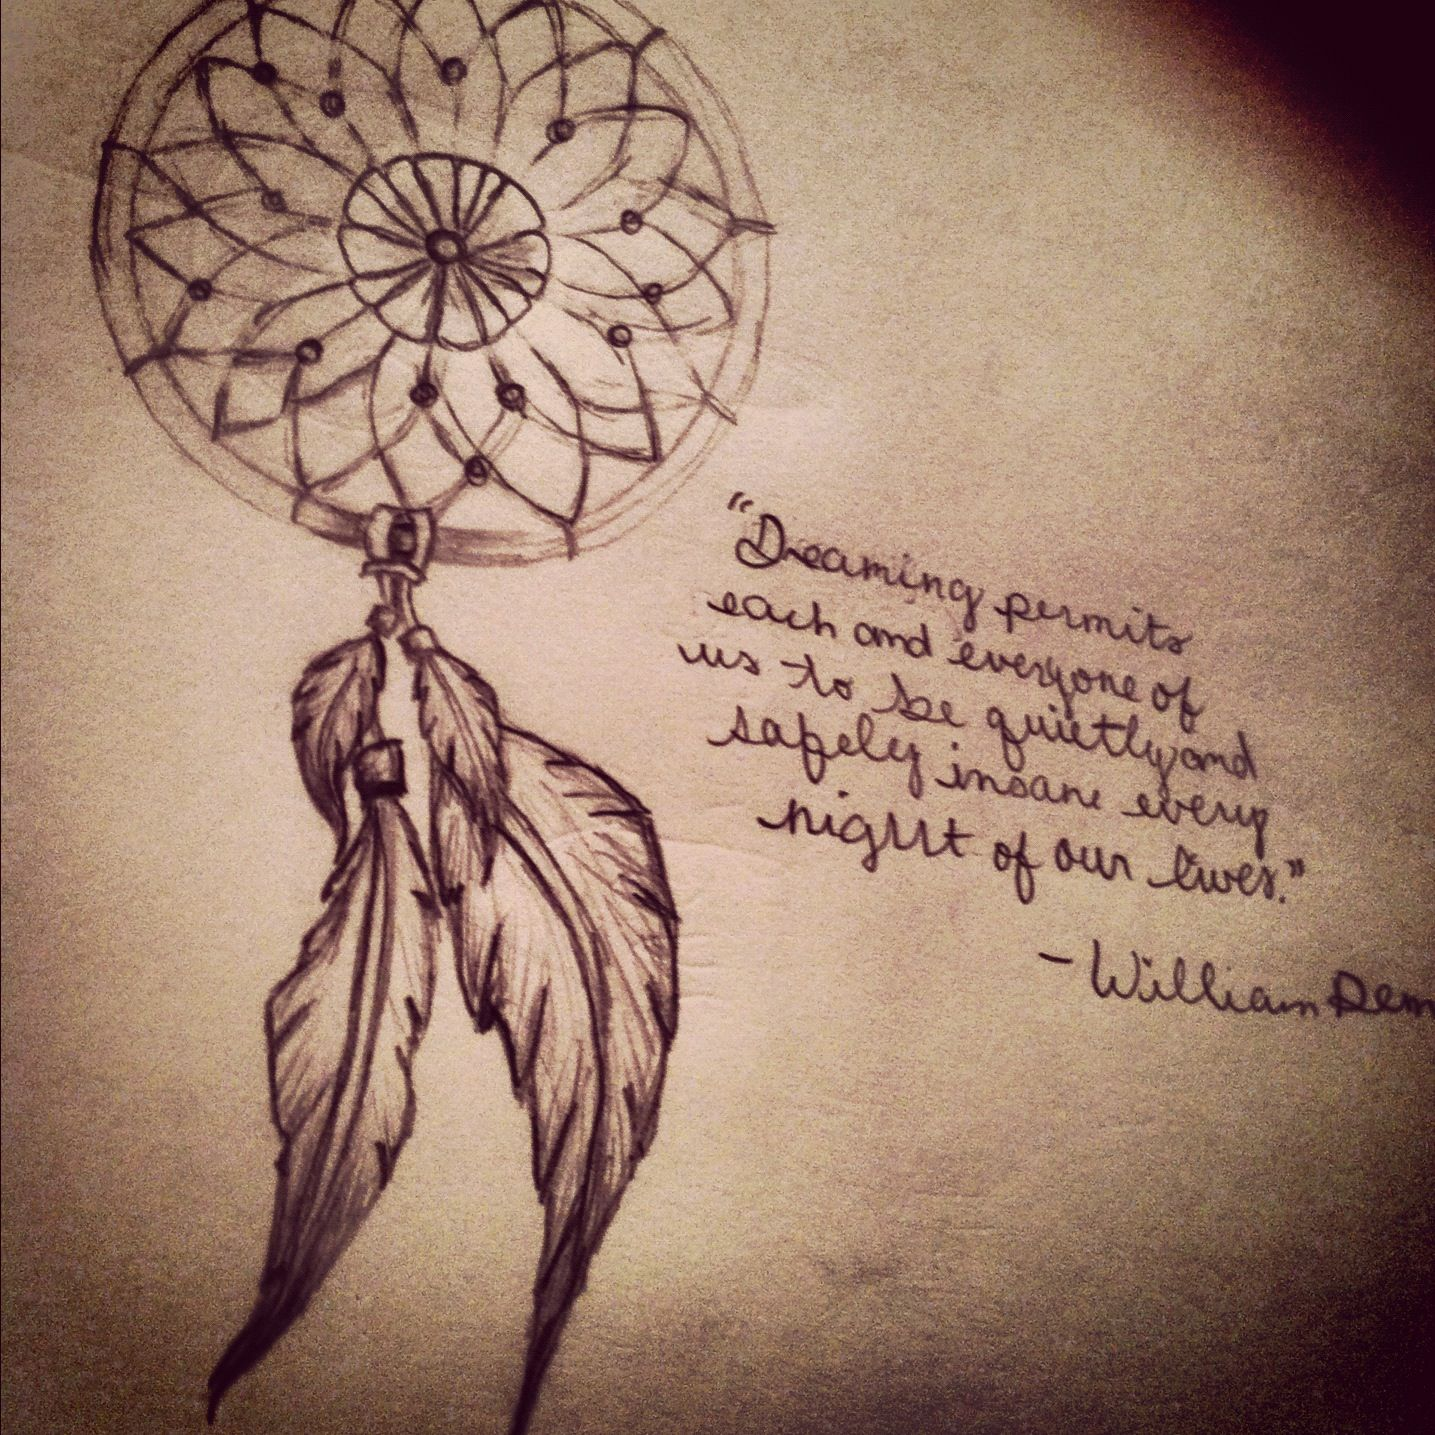 Tattoo Quotes Dreams: Dream Catcher Tattoo . Love The Words Too! But Id Have My